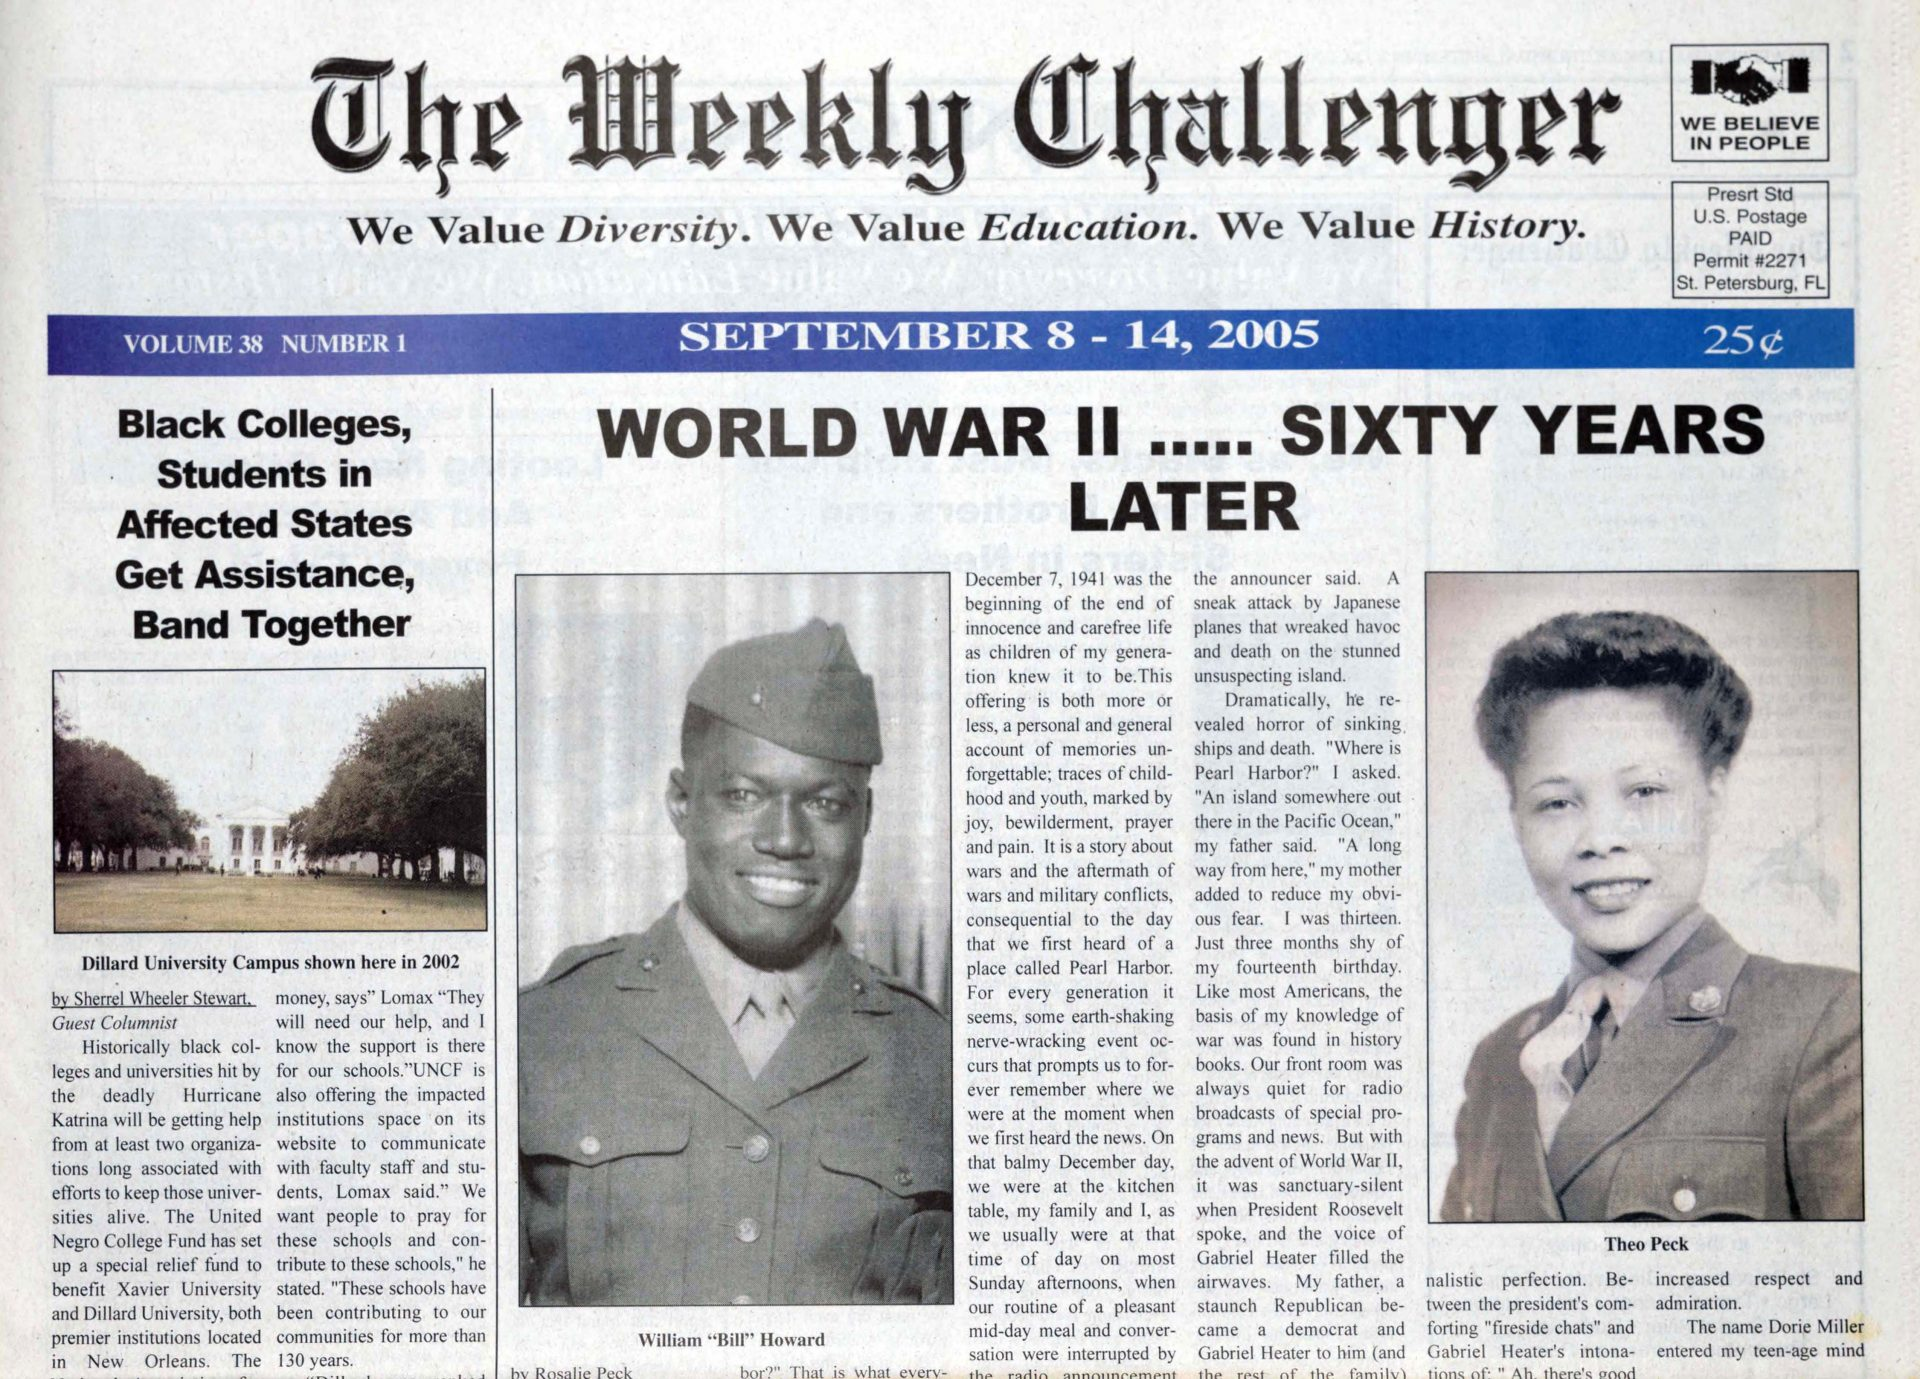 Cover of The Weekly Challenger ne